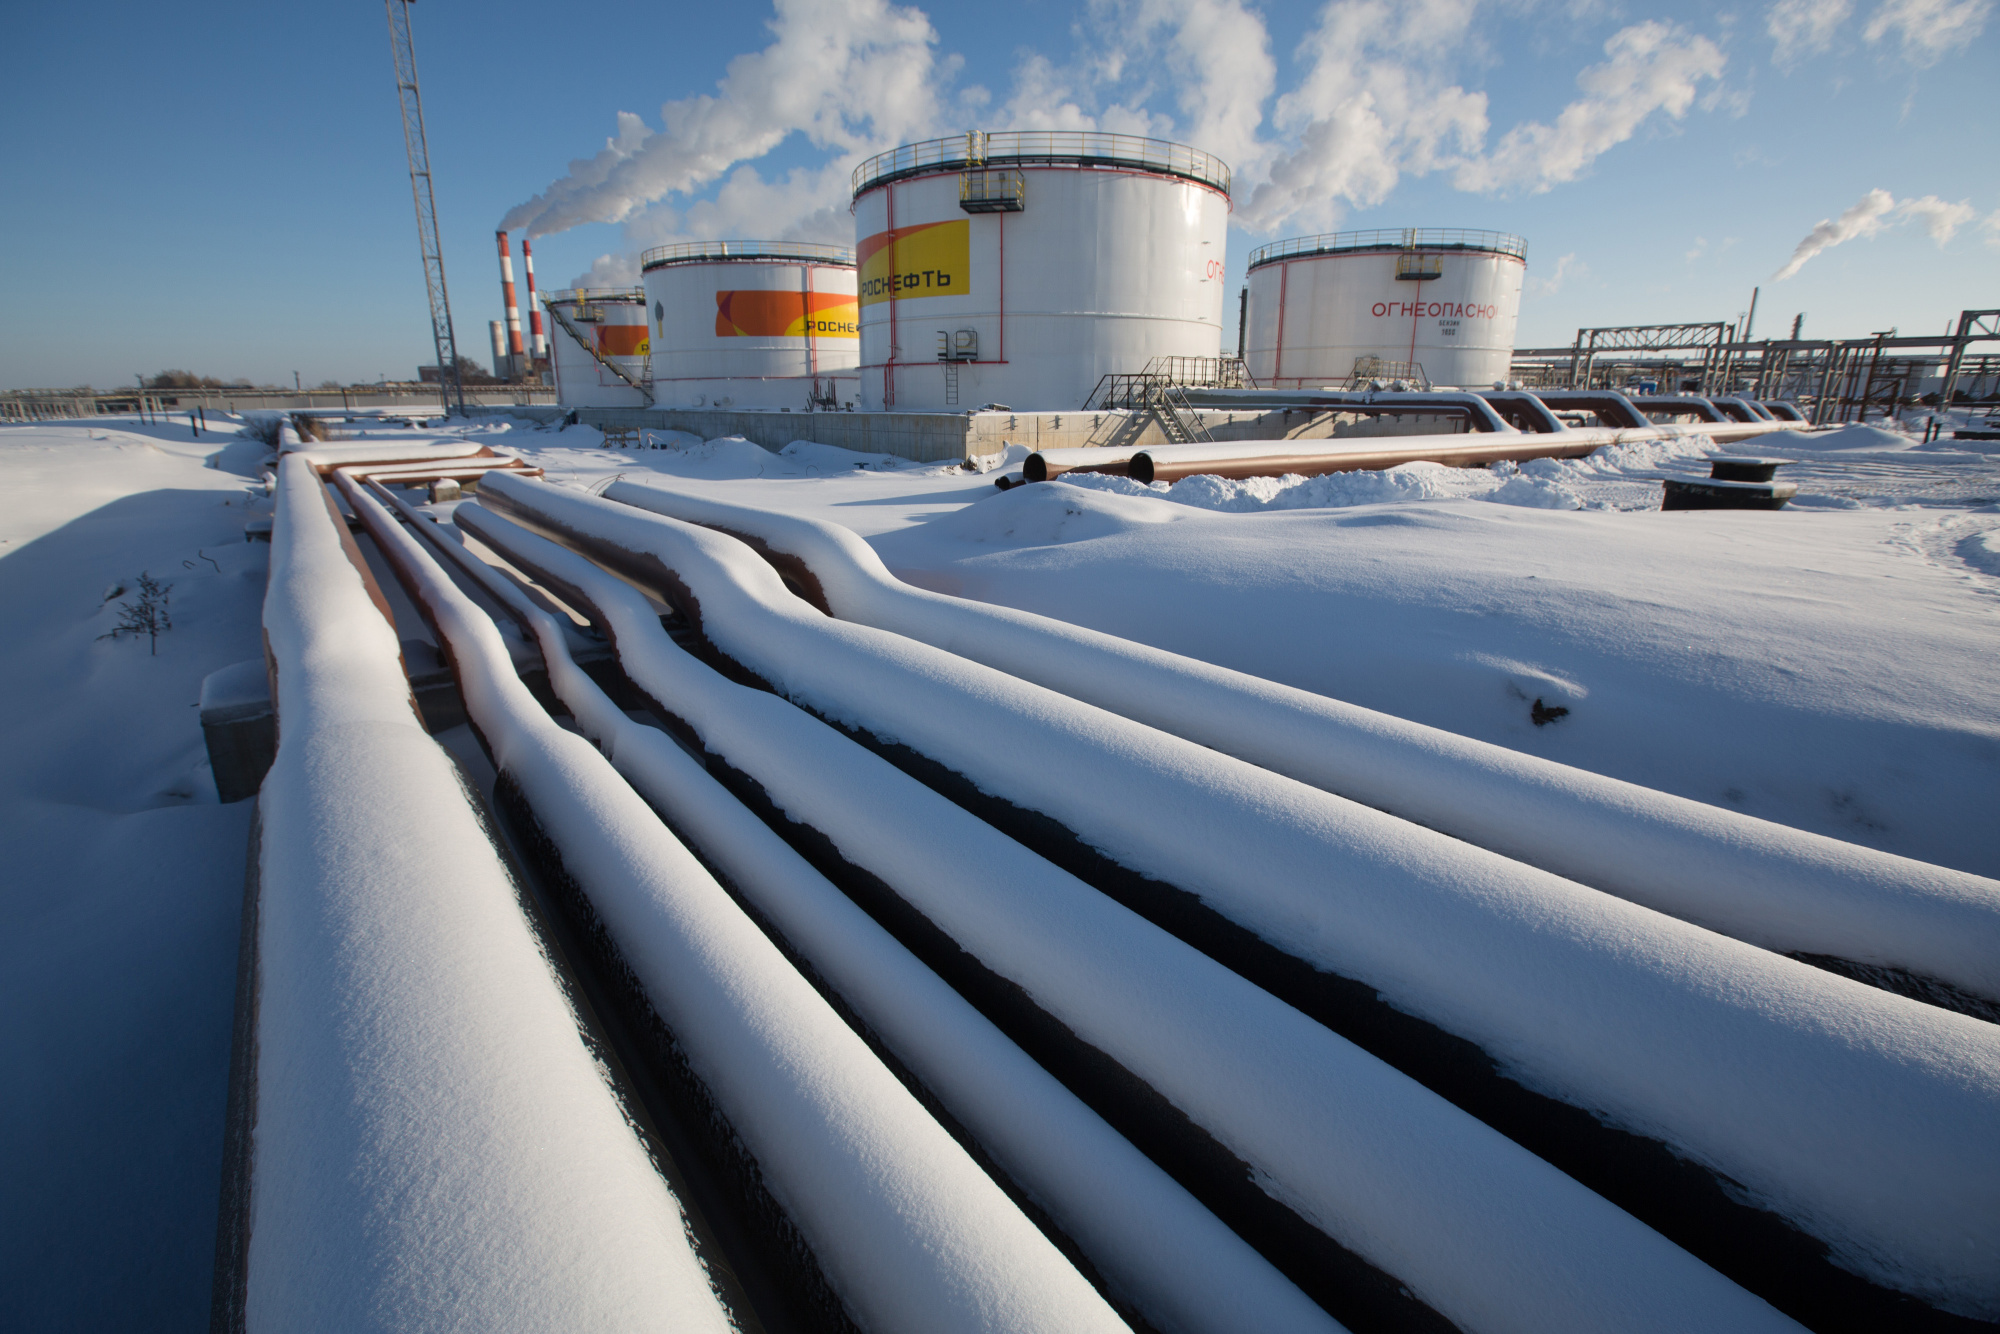 Oil pipelines and storage tanks stand in the snow at the Novokuibyshevsk oil storage plant, operated by Rosneft PJSC, in Novokuibyshevsk, Samara region, Russia, on Thursday, Dec. 22, 2016.  Photographer: Andrey Rudakov/Bloomberg